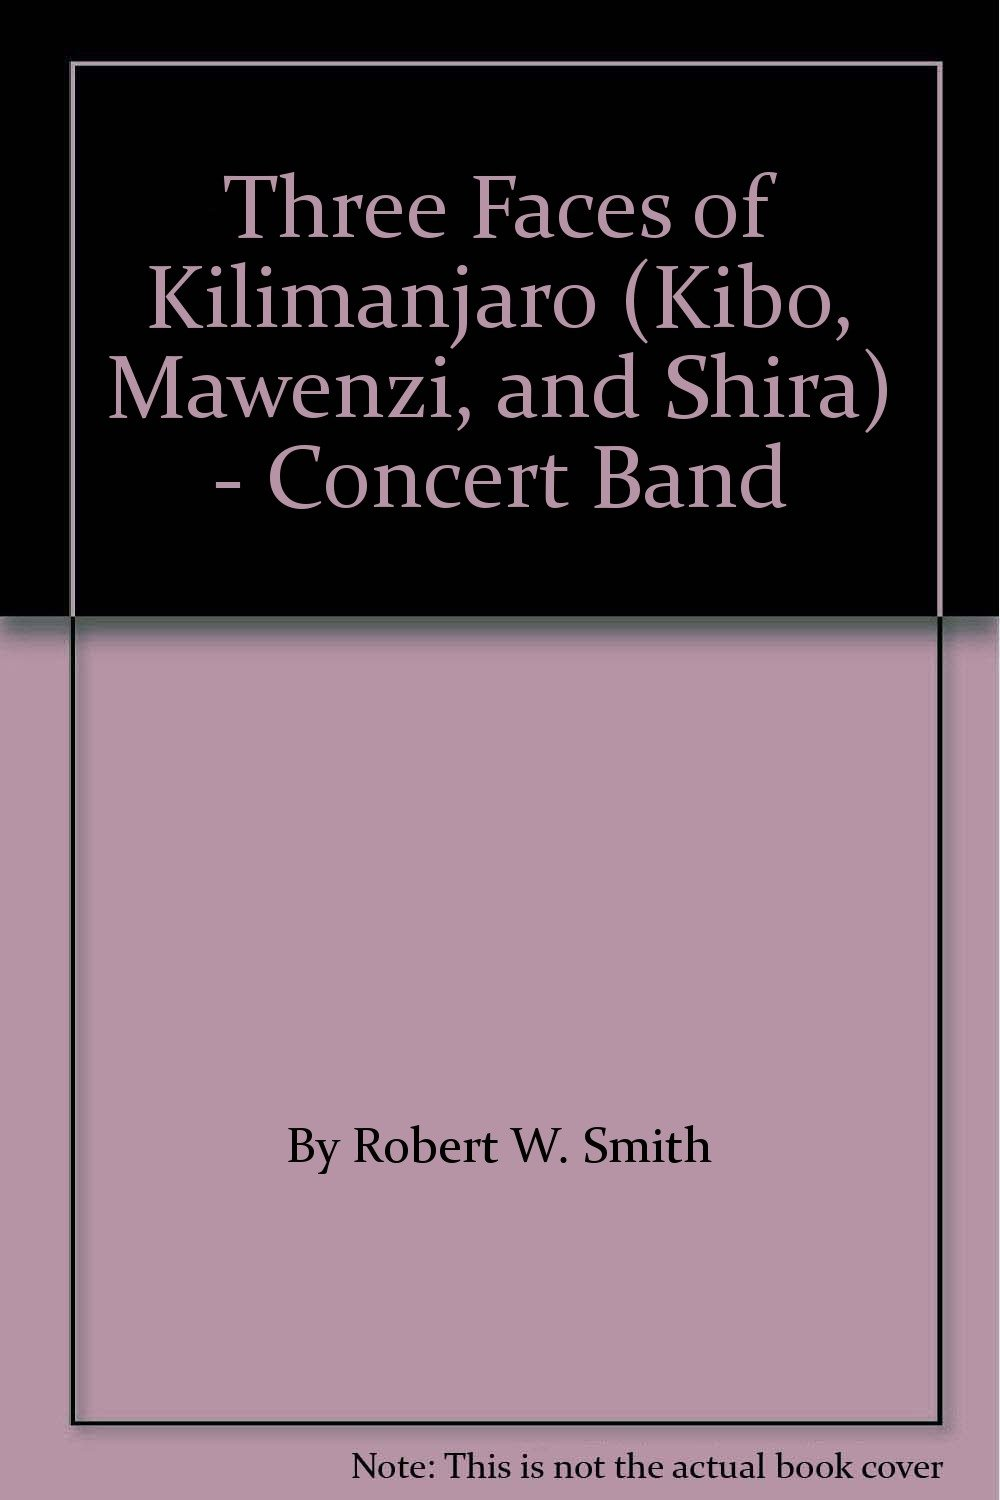 Three Faces of Kilimanjaro (Kibo, Mawenzi, and Shira) - Concert Band PDF